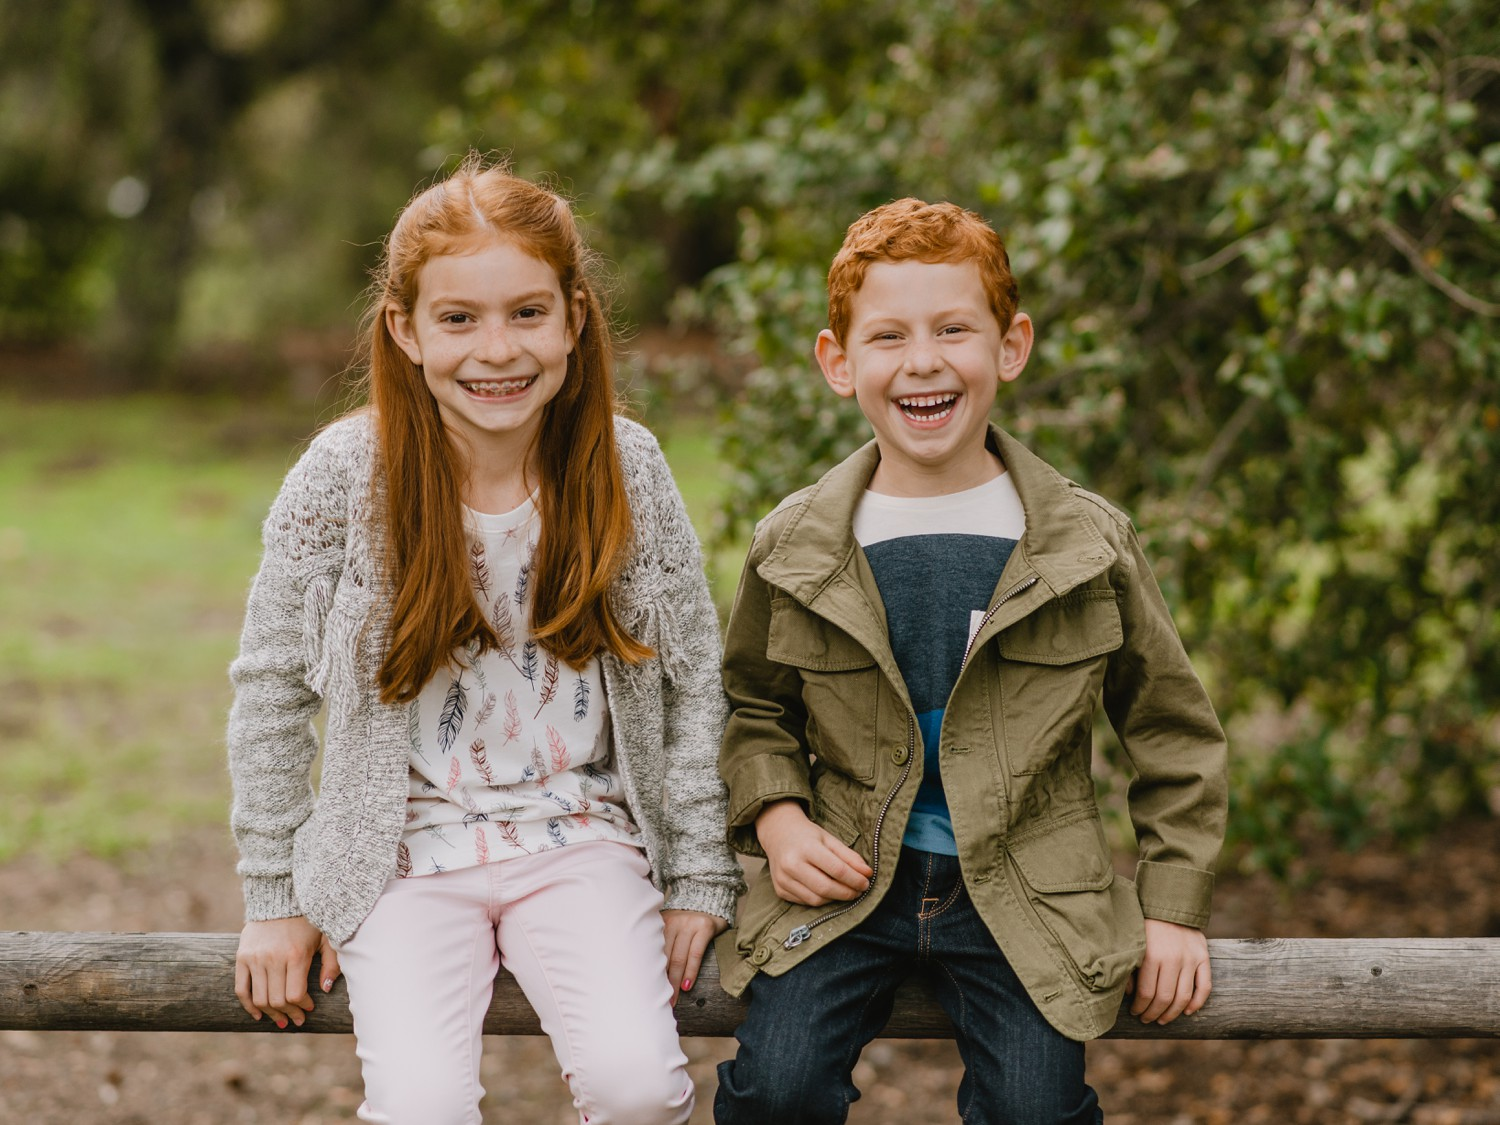 kids-redheads-family-photography-2_WEB